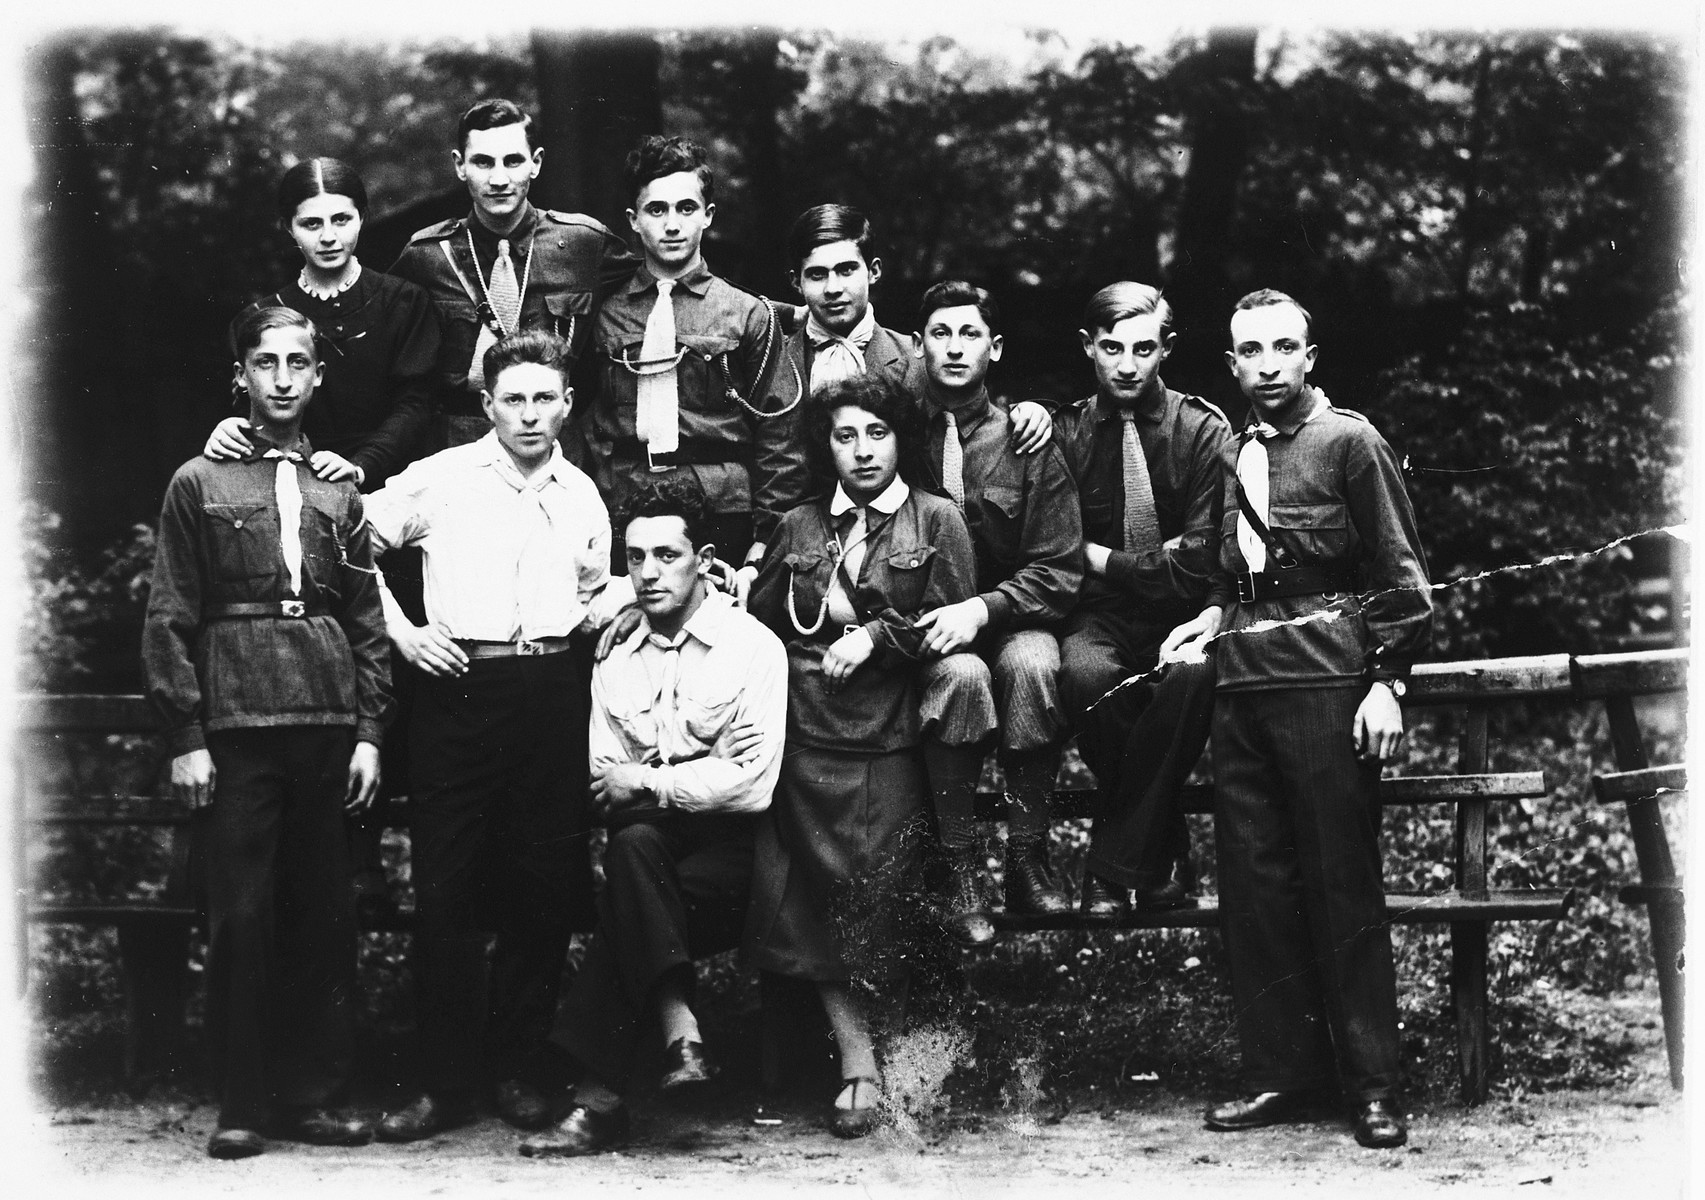 Group portrait of members of the Hashomer Hatzair Zionist youth movement in Kalisz, Poland.